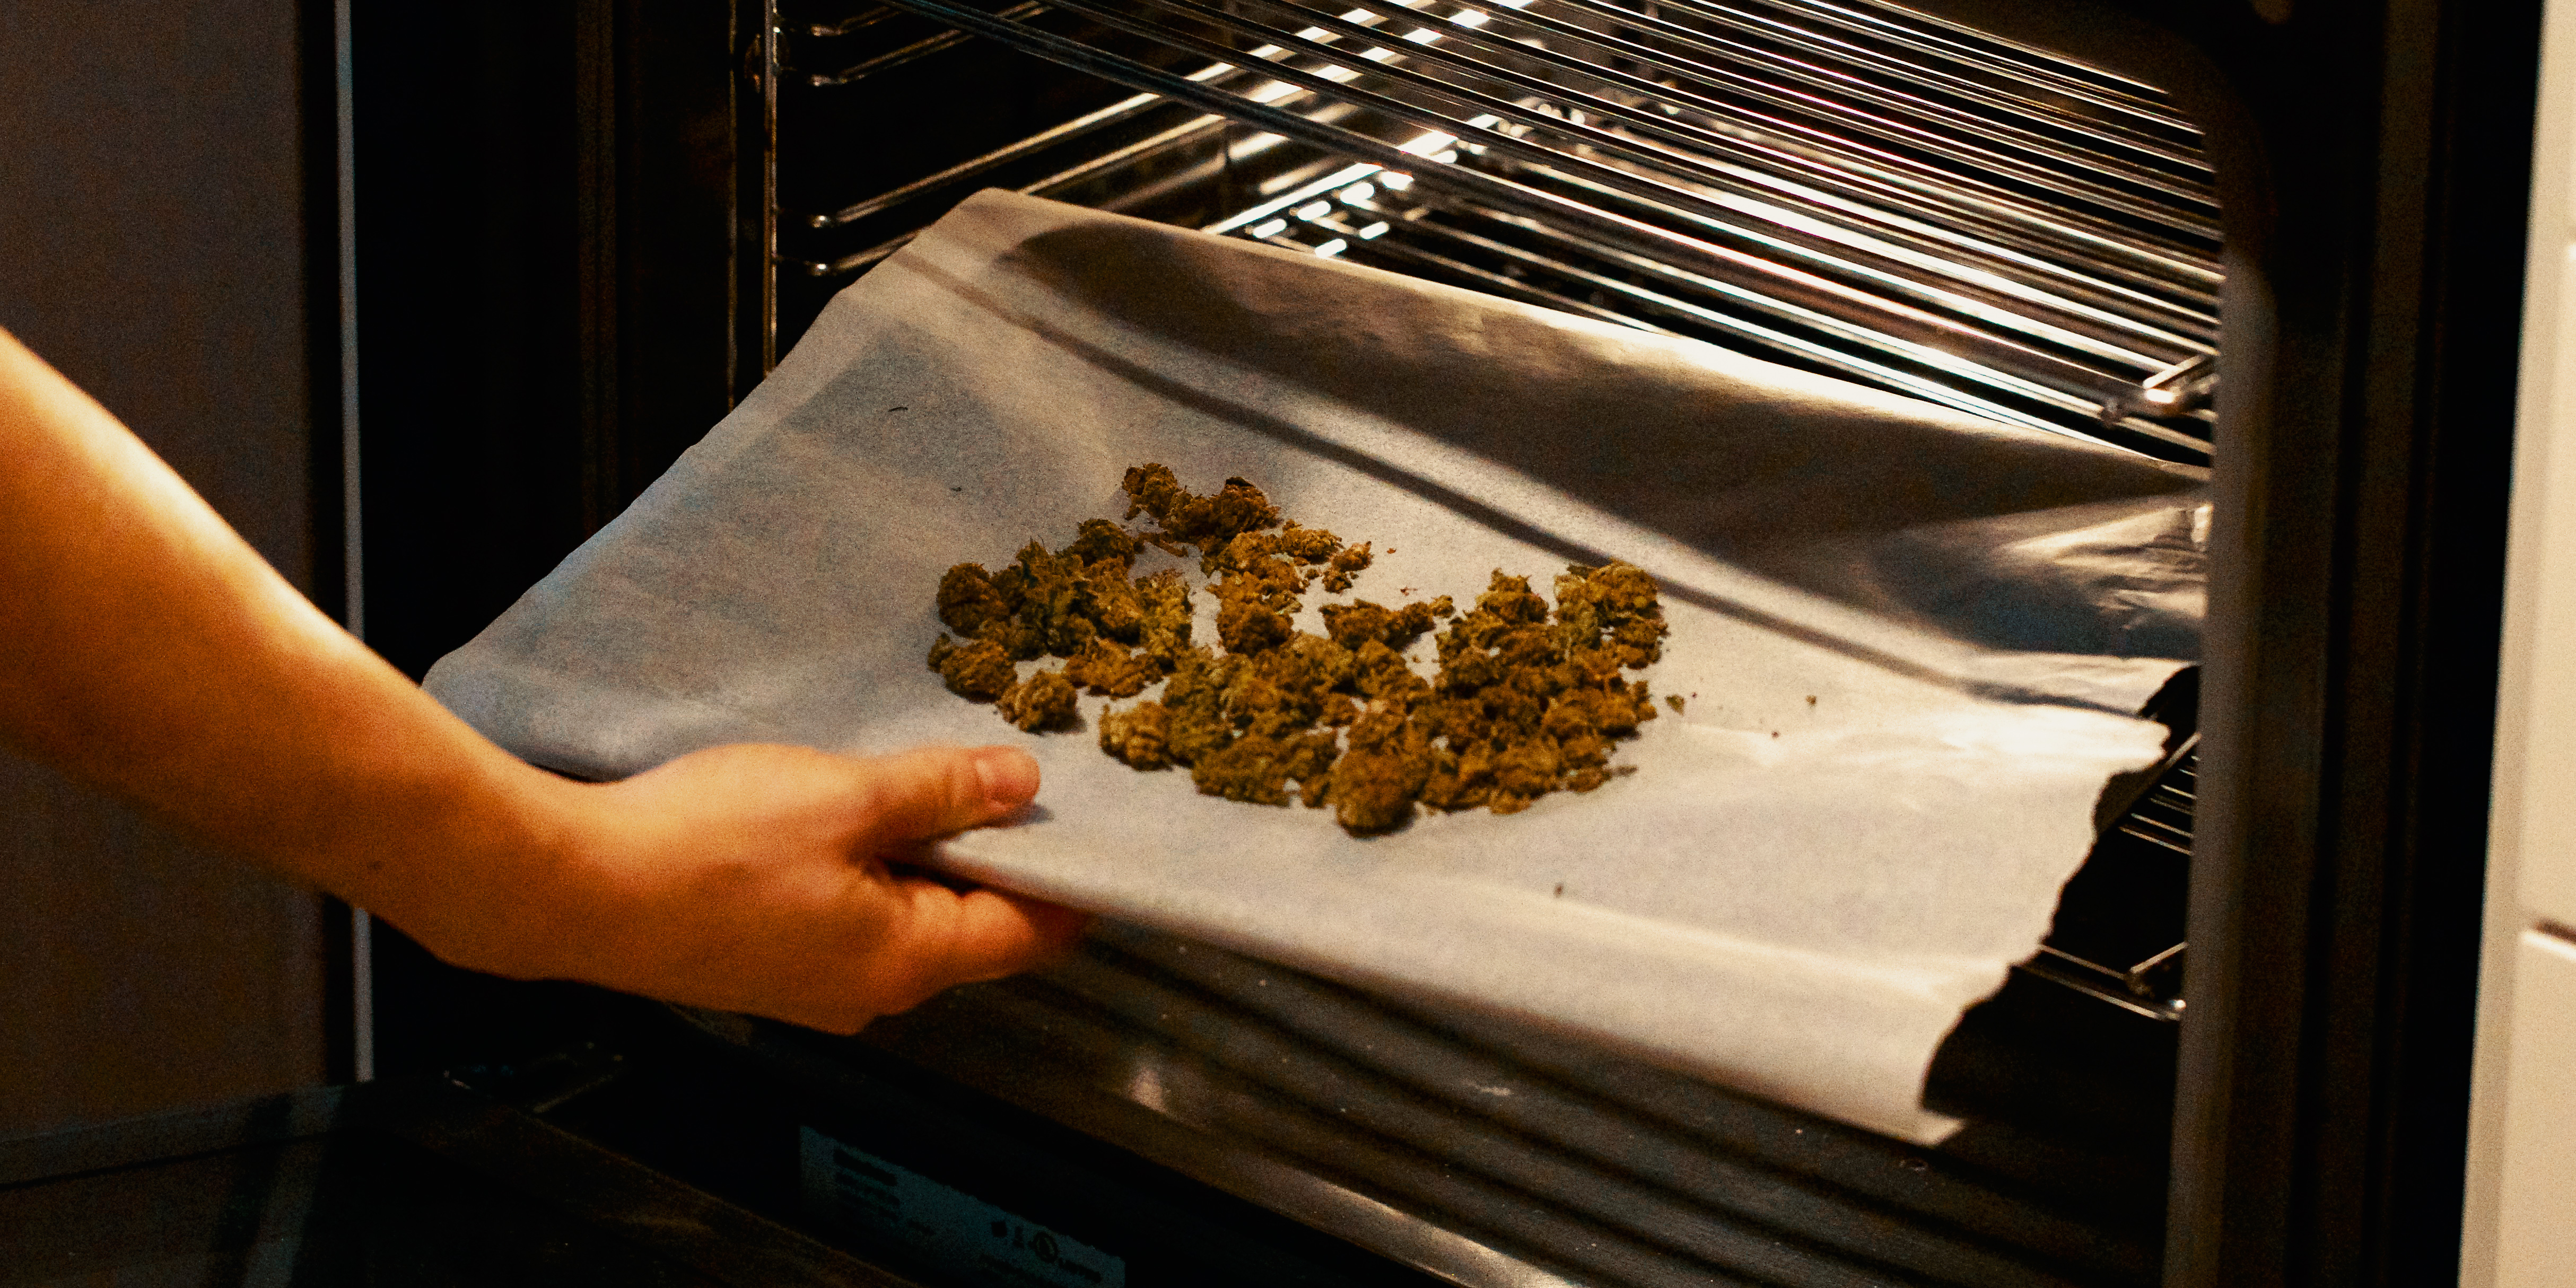 Decarboxylating in the Oven